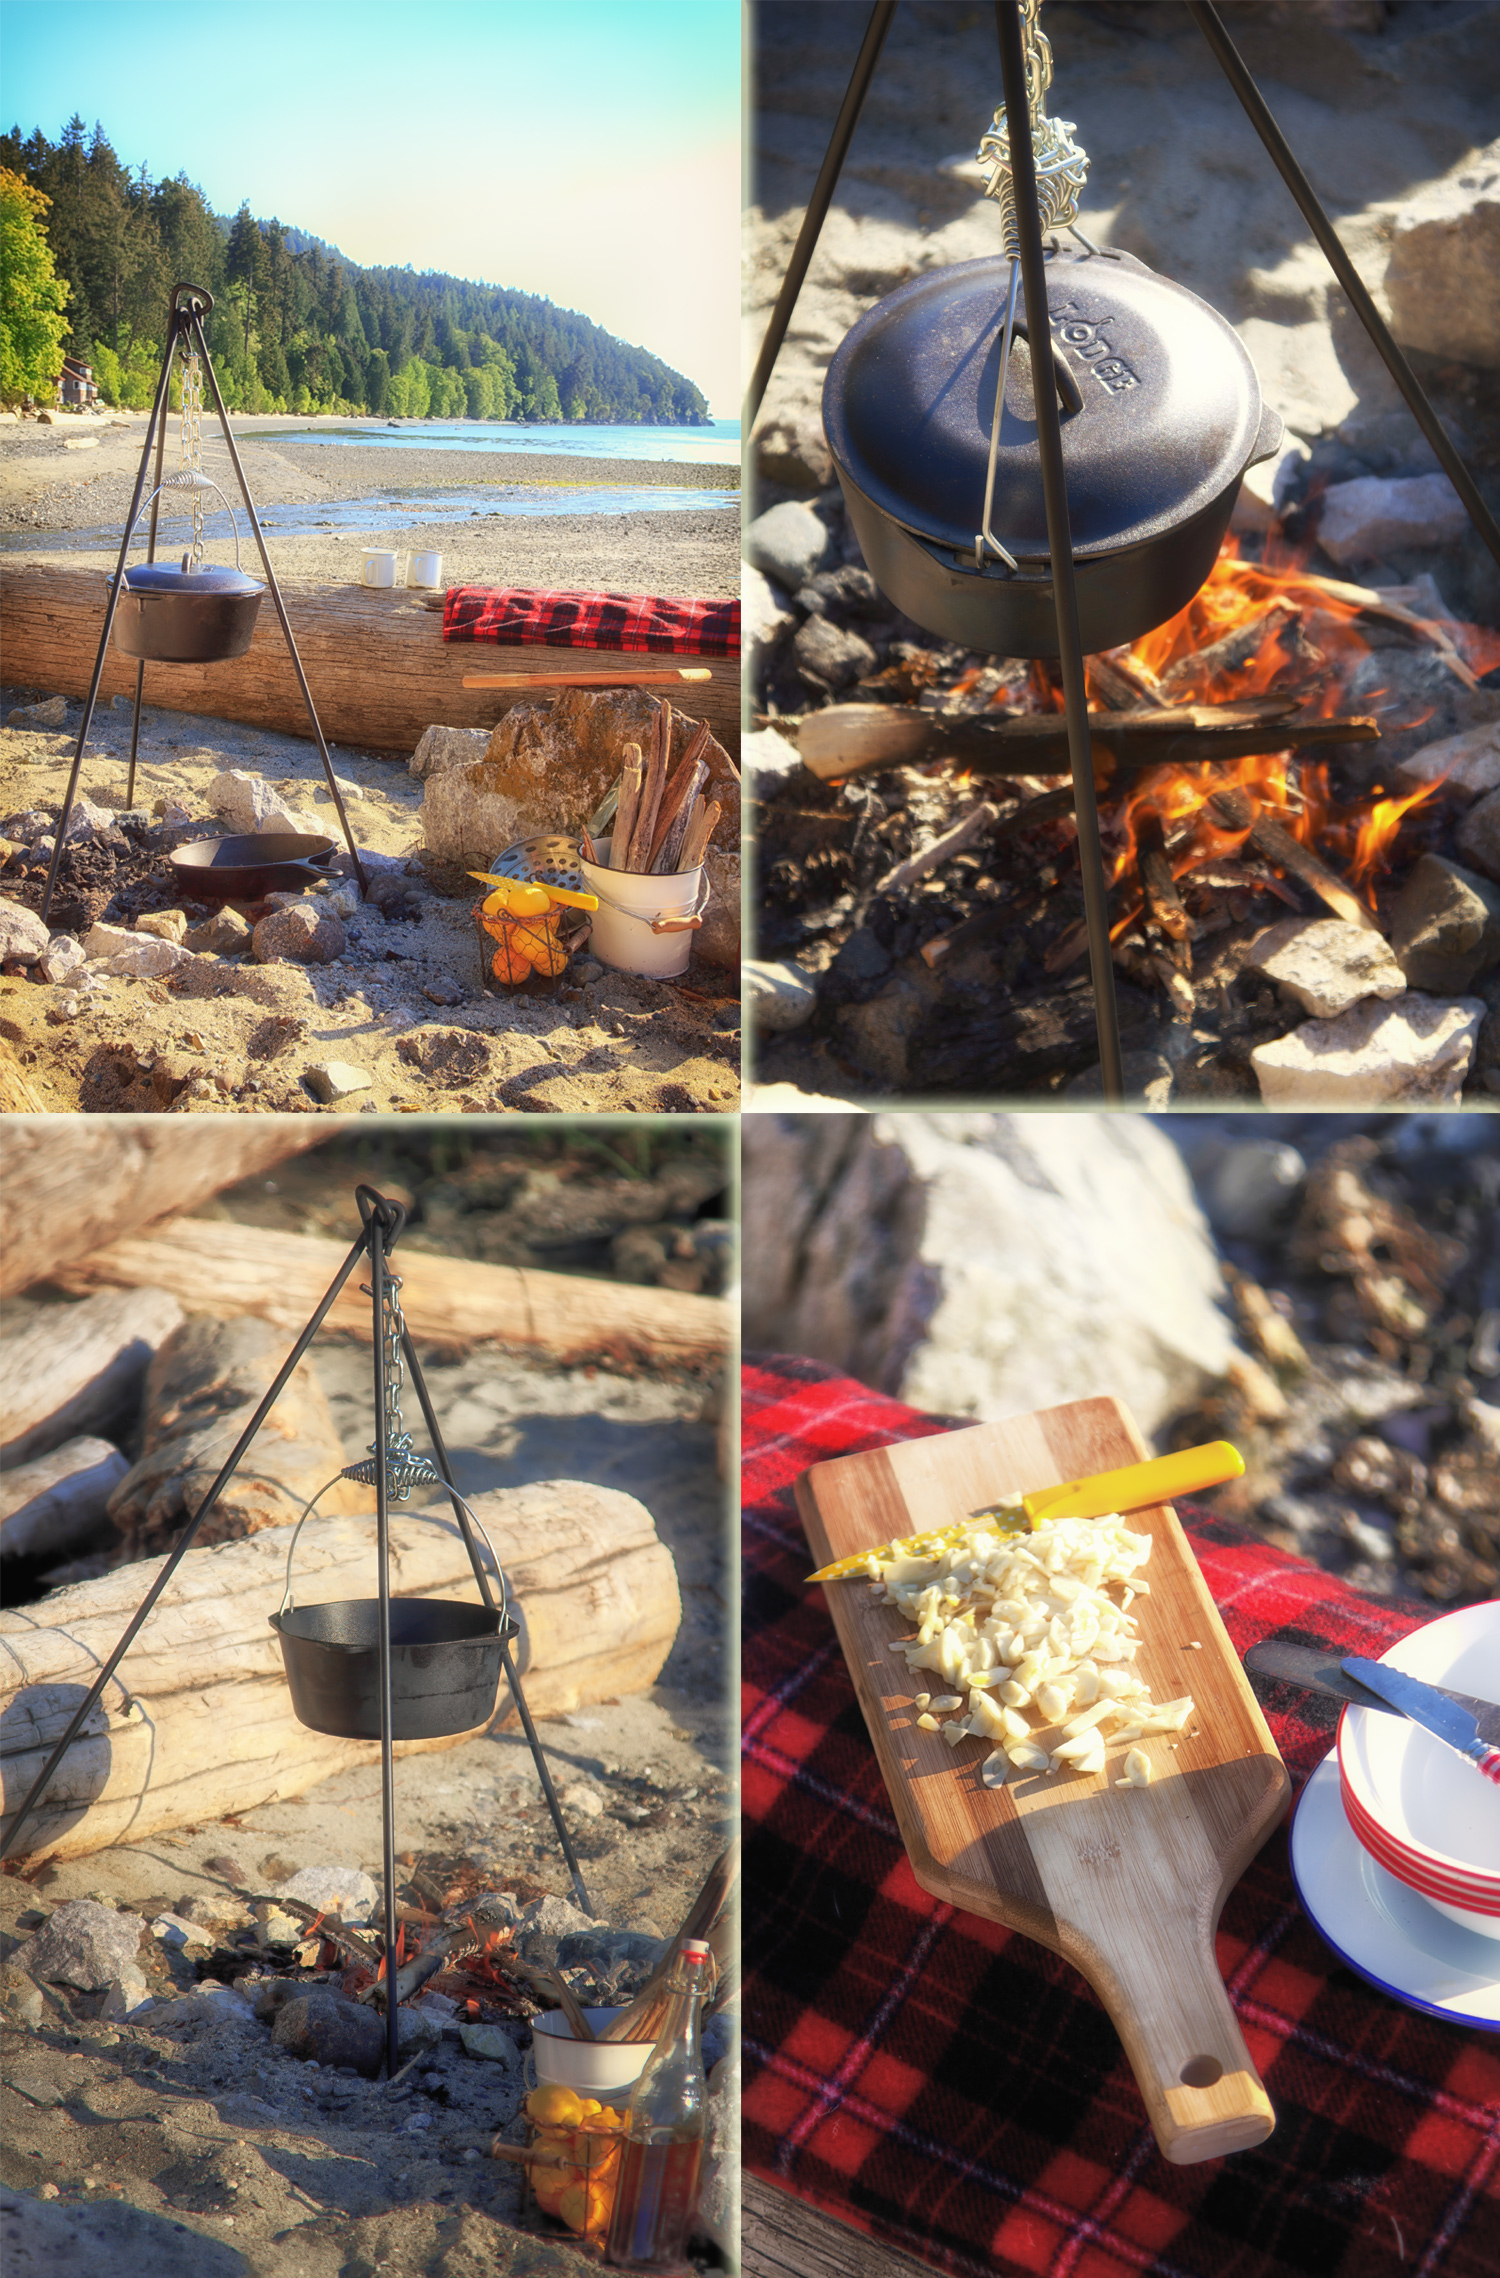 Campfire Cooking Tripod via J5MM.com